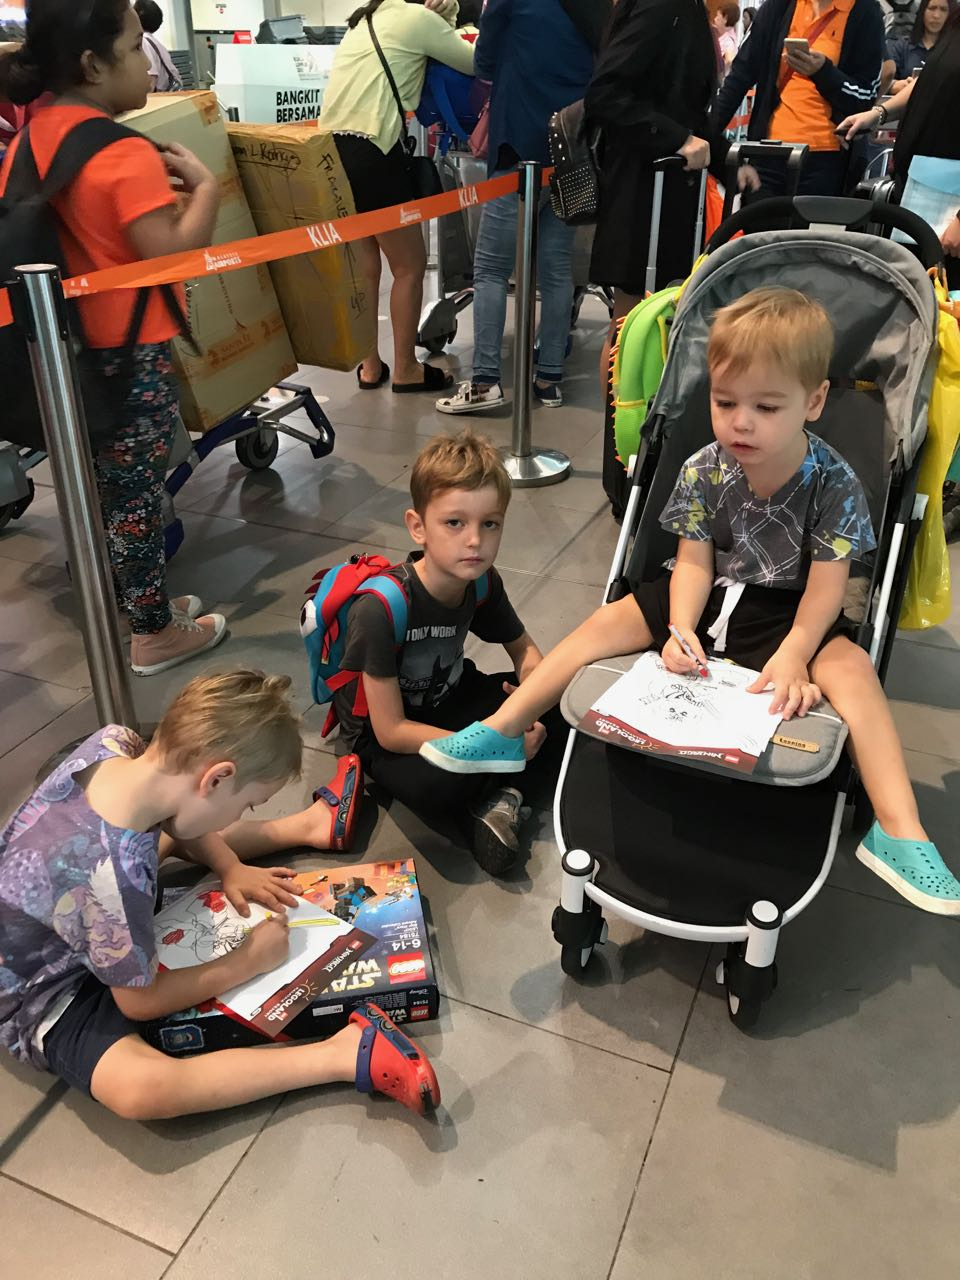 - More than a stroller. Also, more waiting...